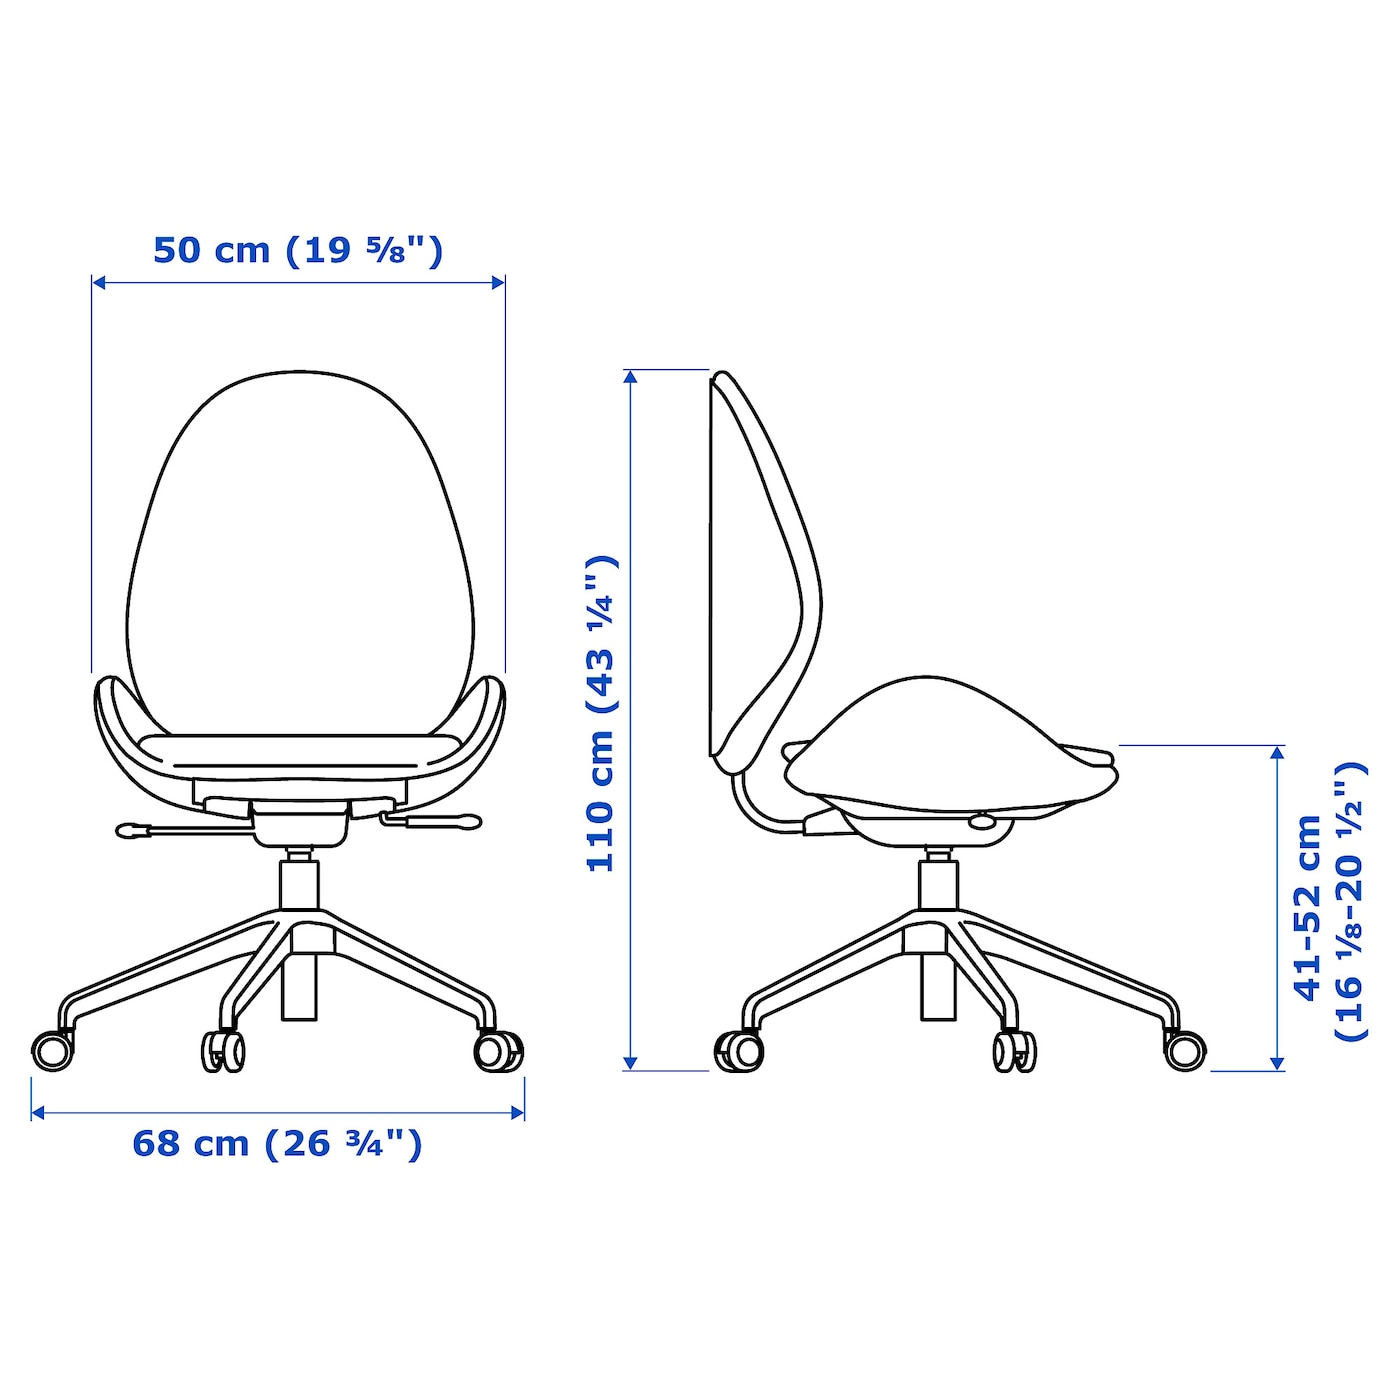 IKEA HATTEFJÄLL swivel chair 10 year guarantee. Read about the terms in the guarantee brochure.